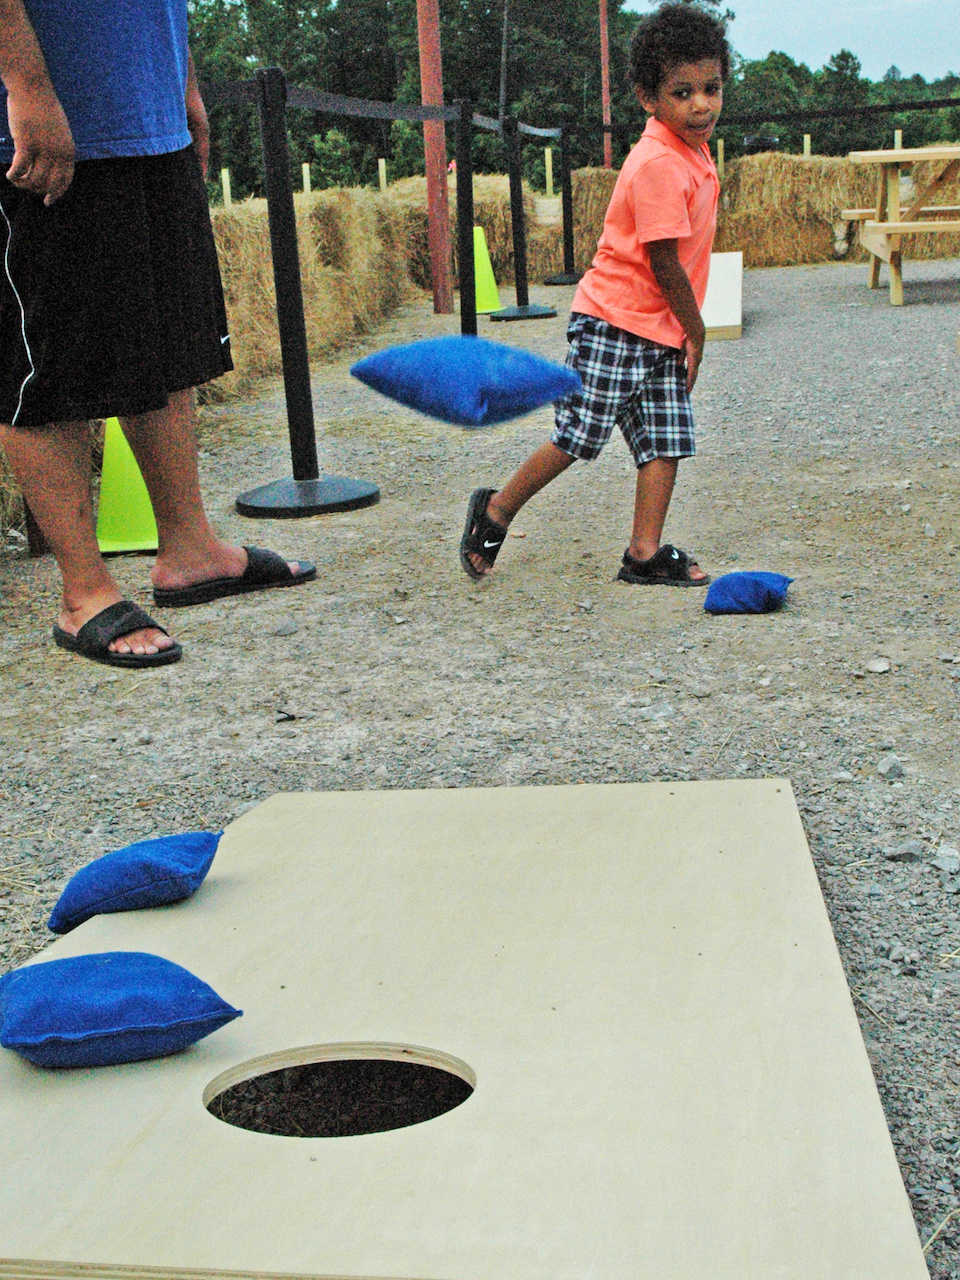 A handsome little fella practices his cornhole skills.